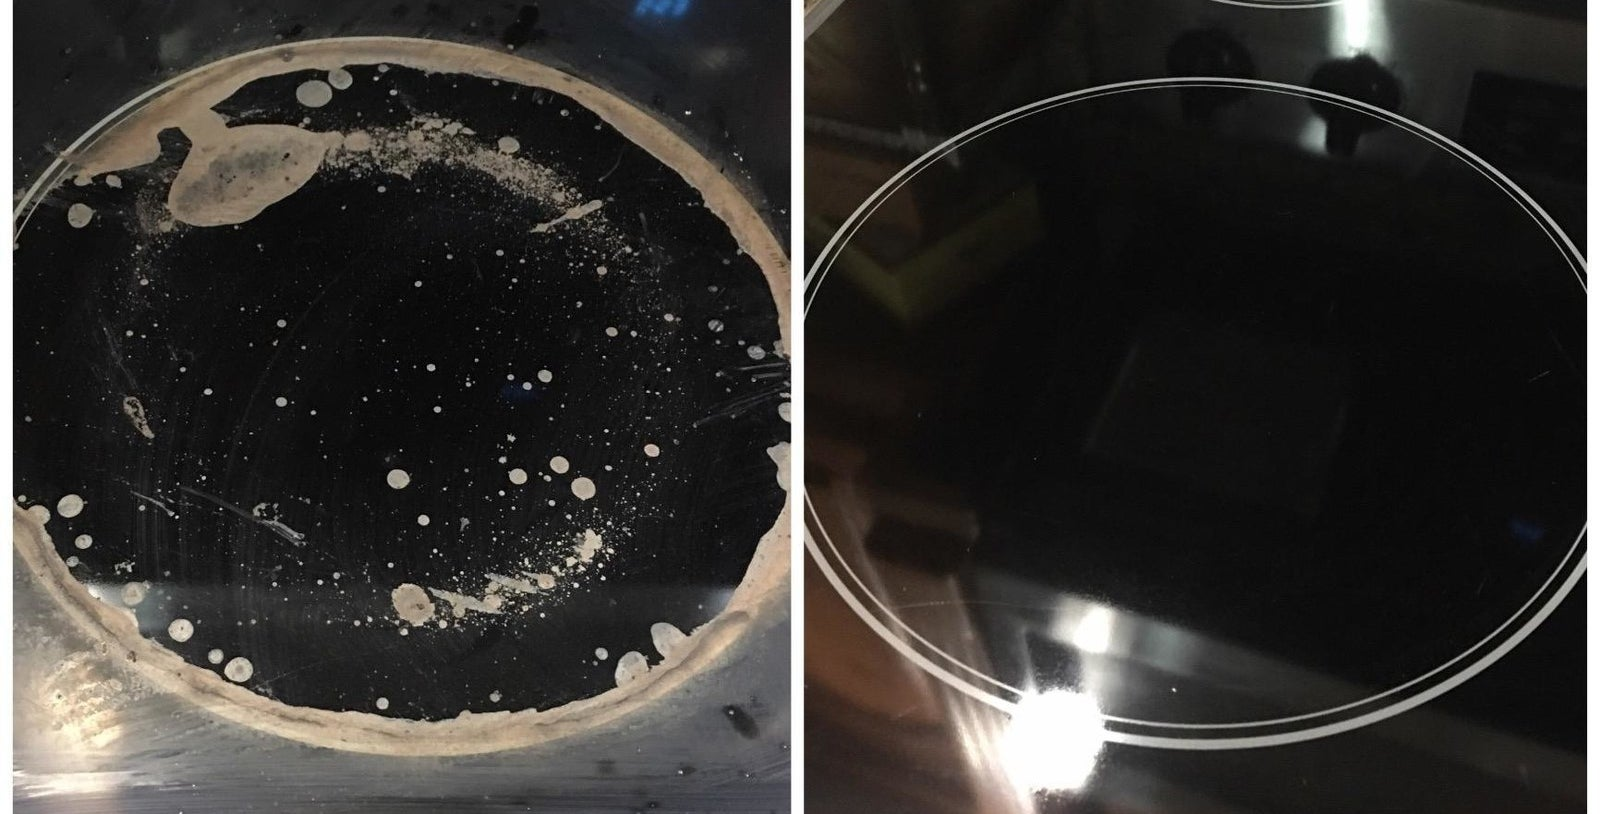 A before-and-after photo showing a dirty stovetop and a clean stovetop